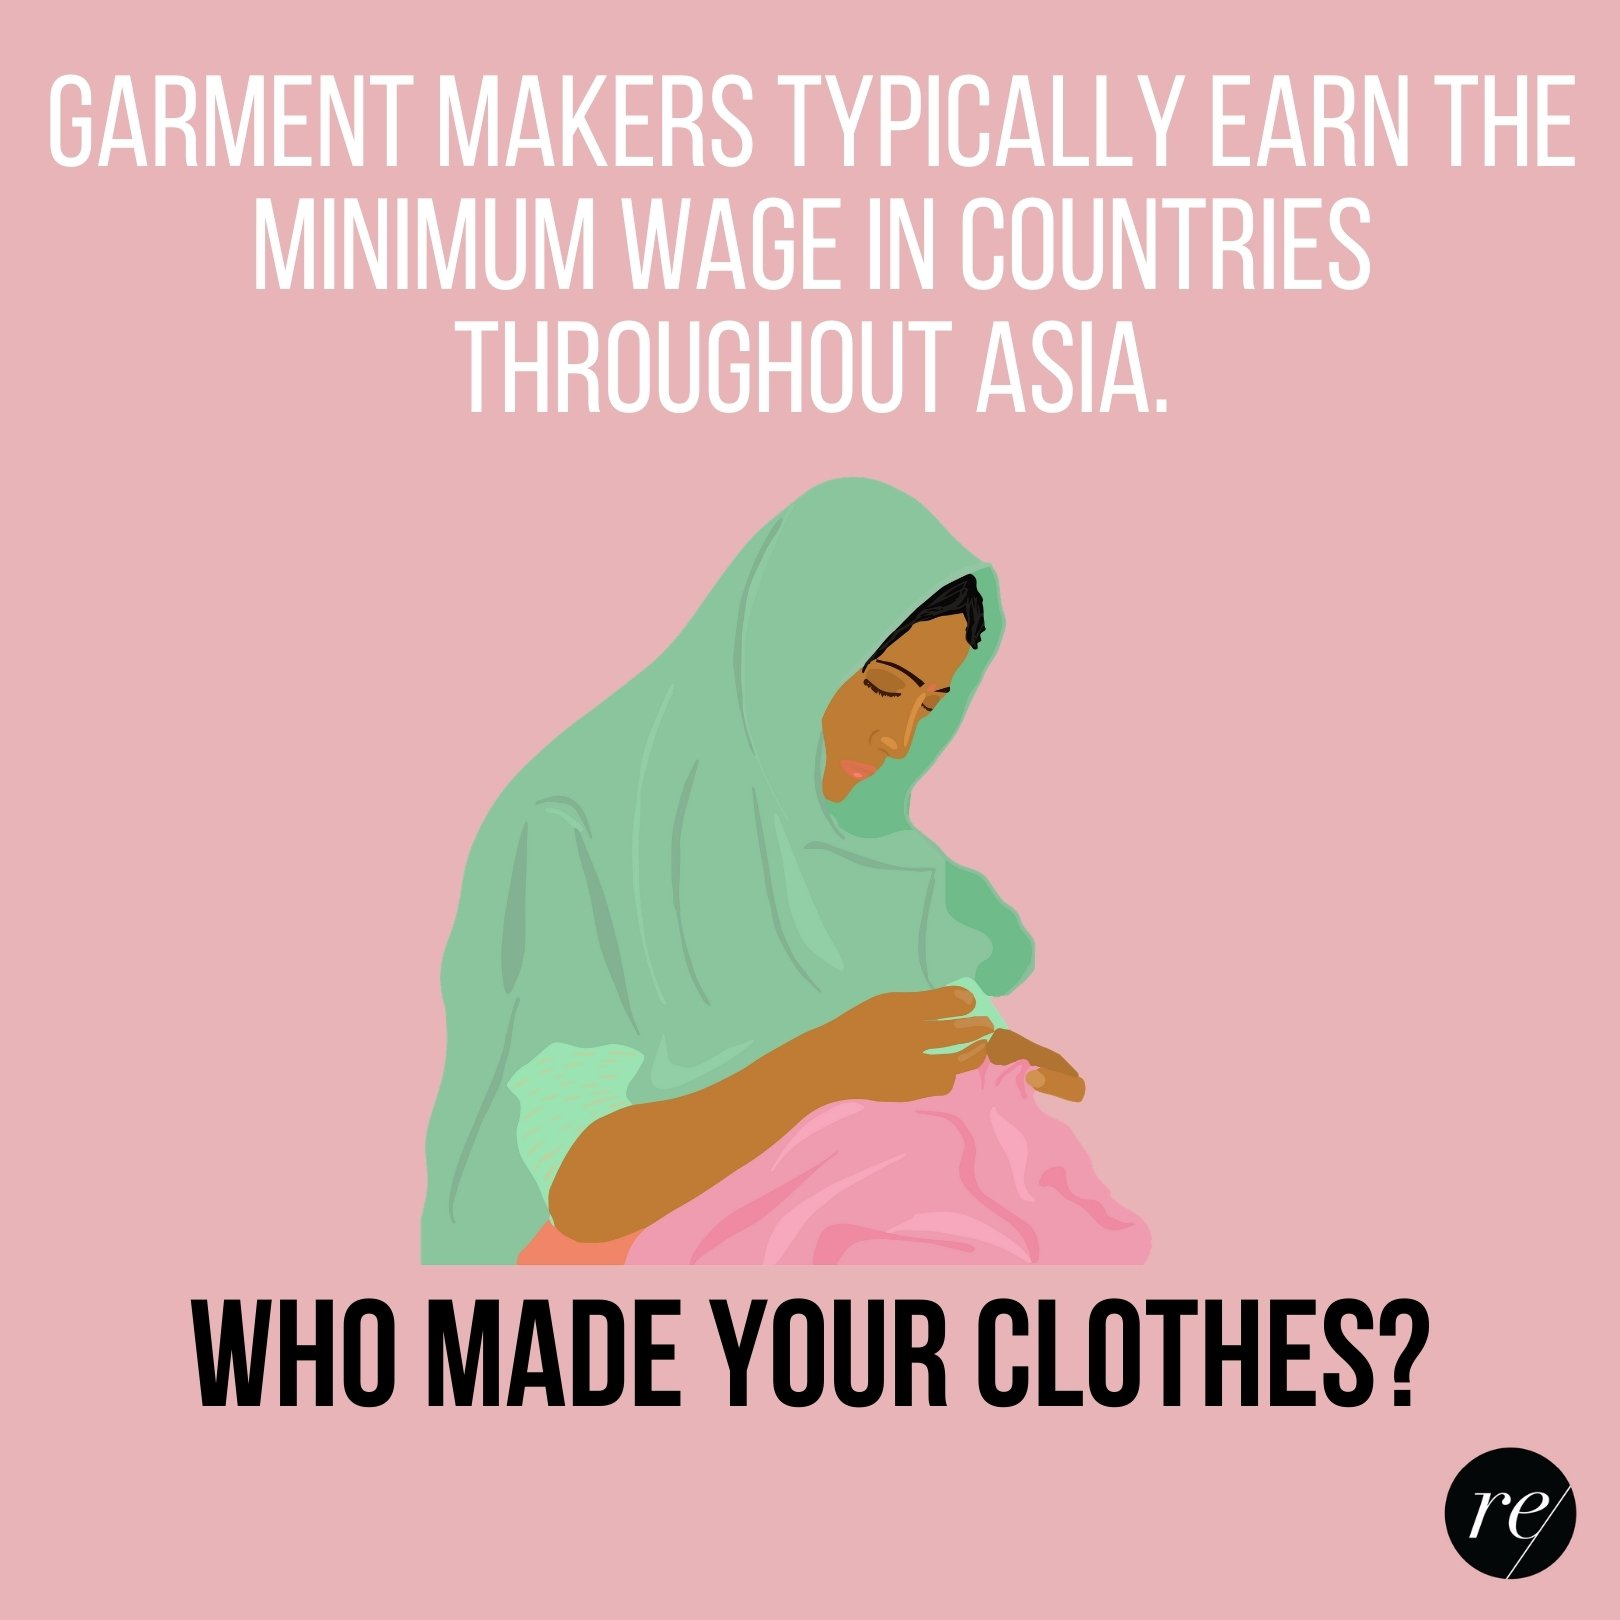 How much do garment workers make?